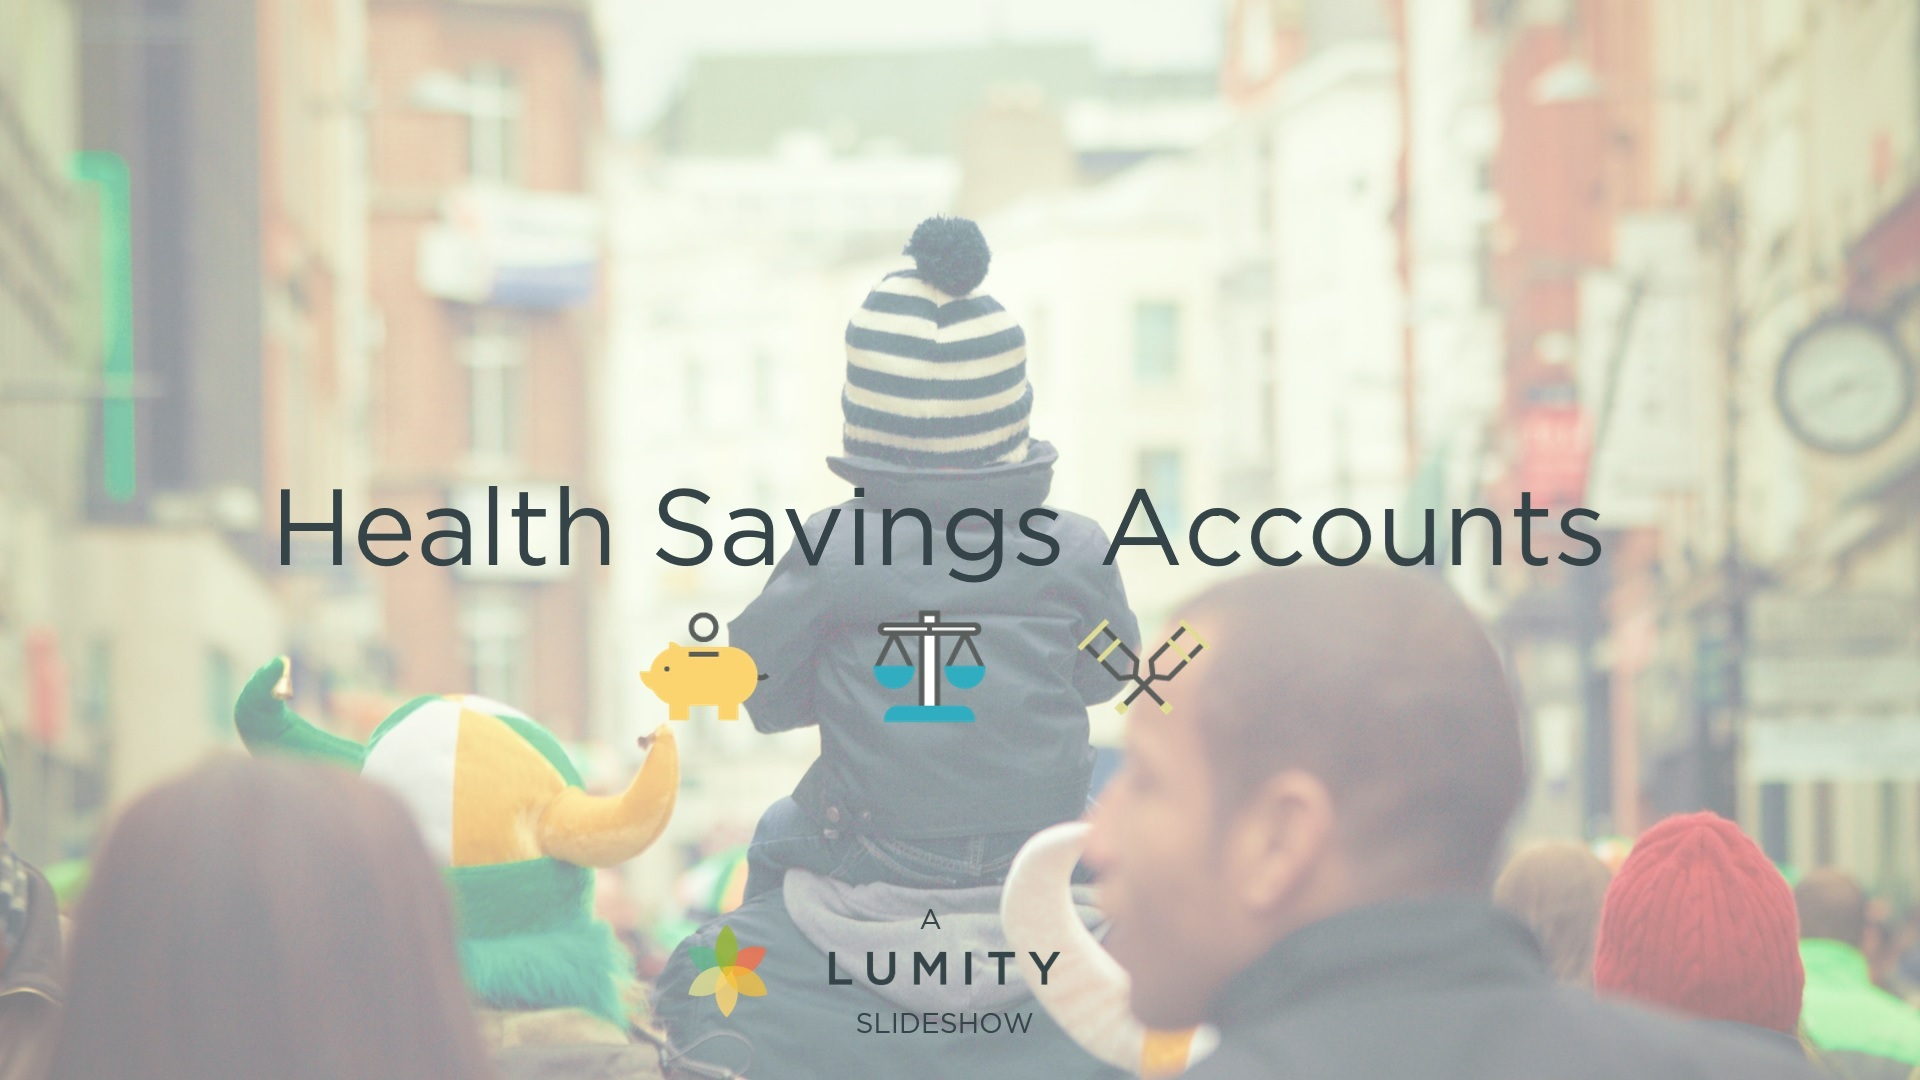 Health Savings Account 101 Slideshow